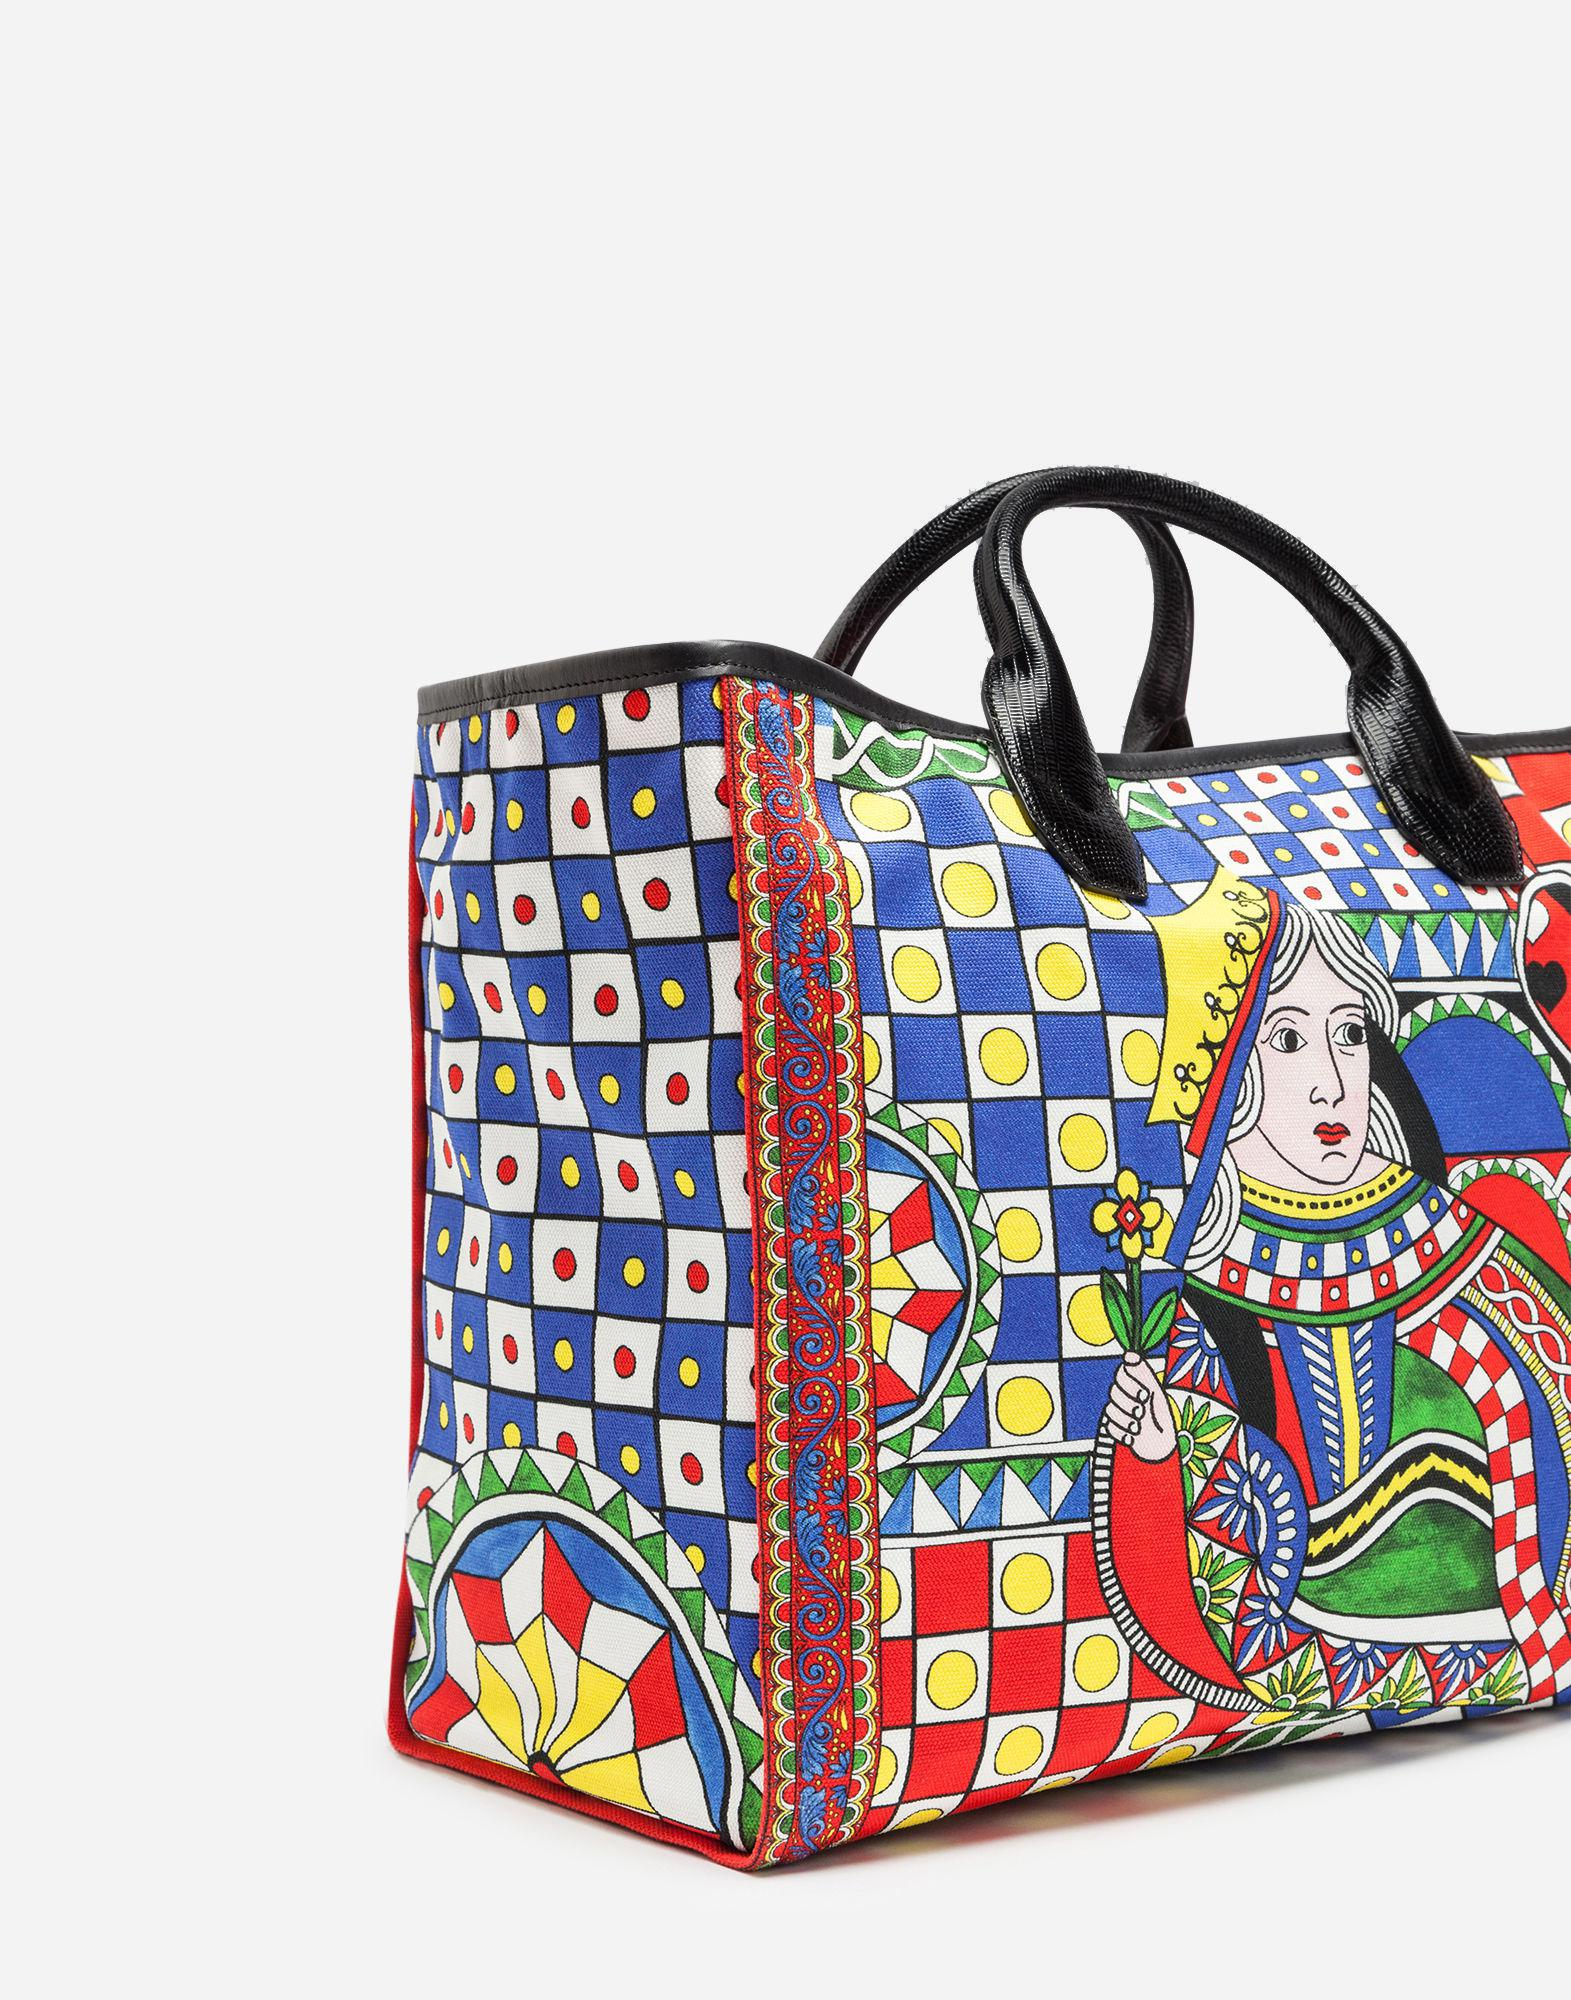 d102e0fd65 Lyst - Dolce   Gabbana Shopping Bag In Printed Fabric And Iguana ...